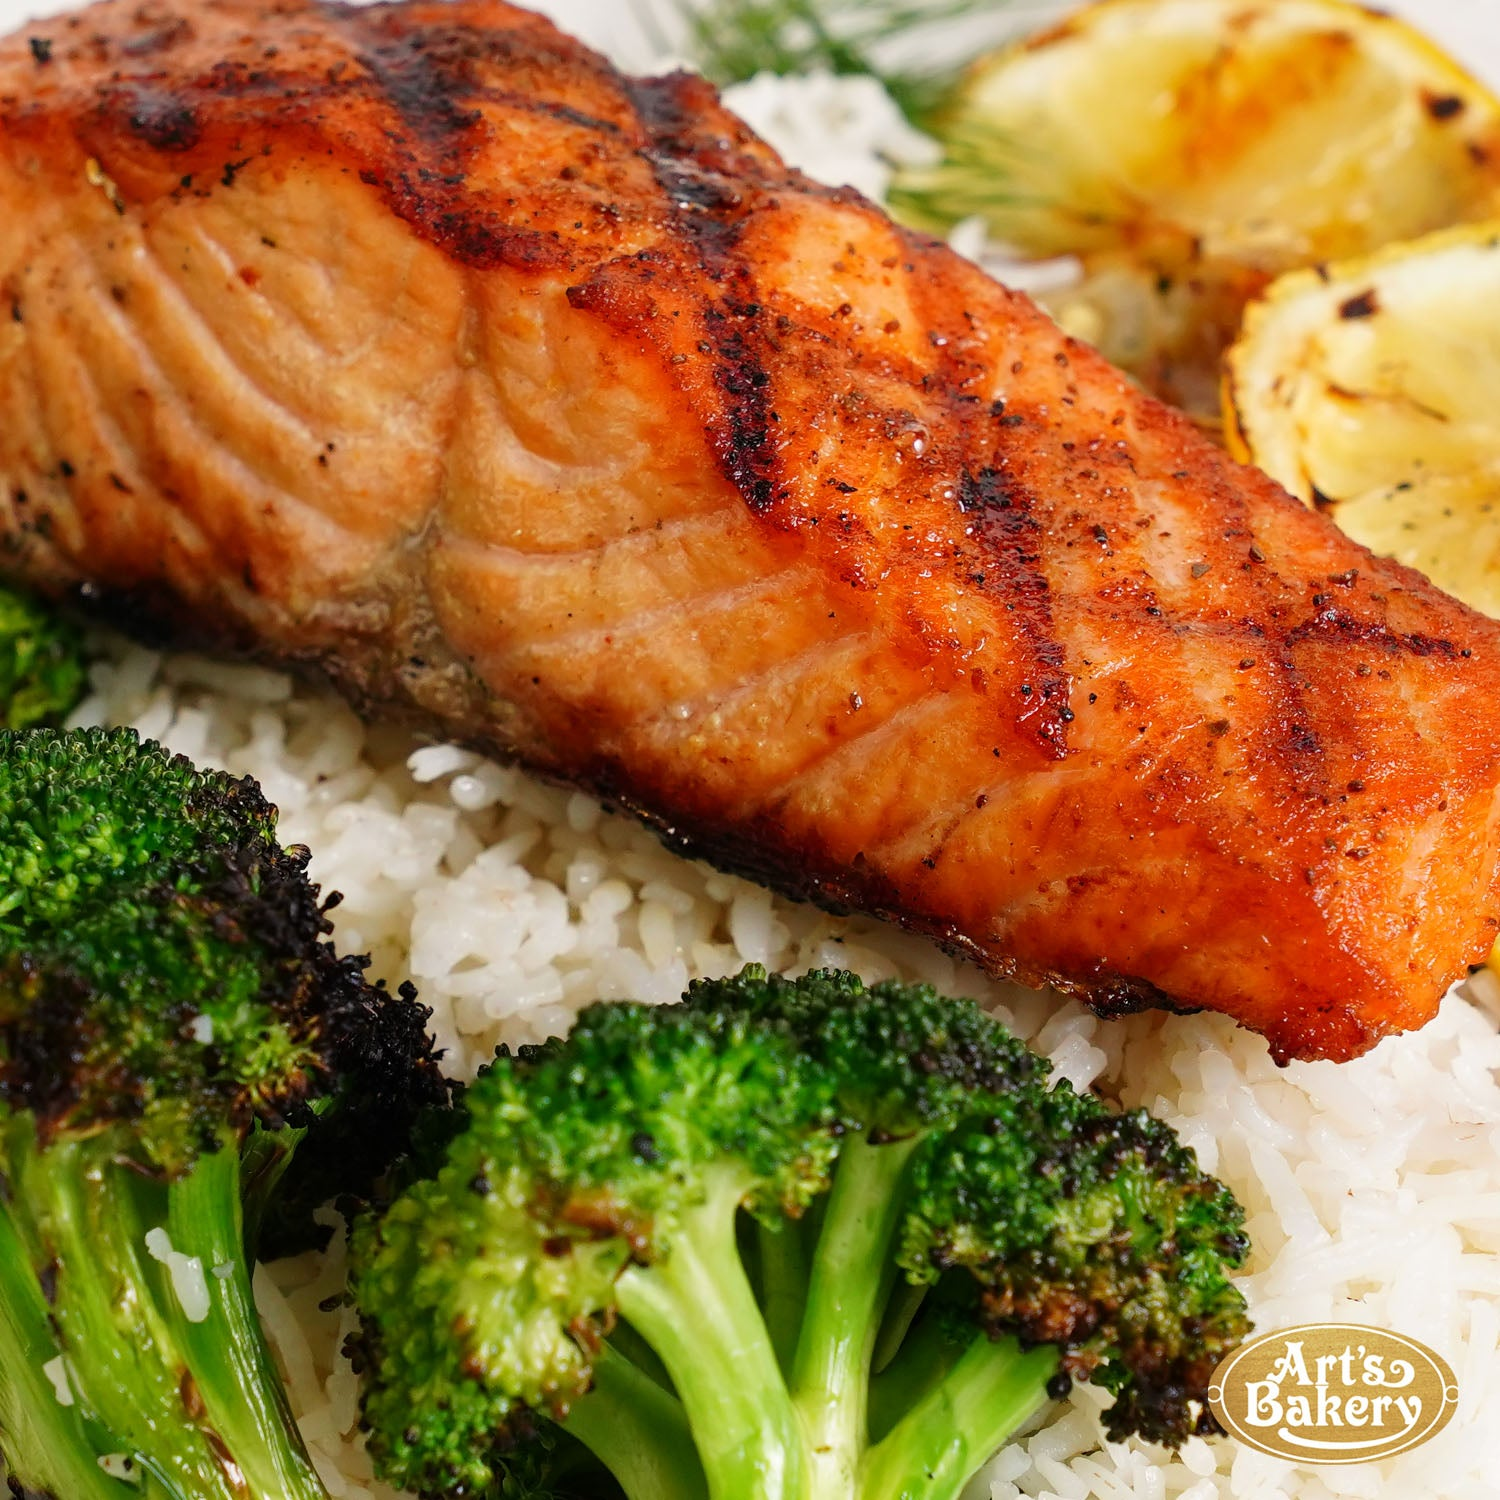 Art S Bakery Glendale Grilled Salmon Steak,How Long Are Car Seats Good For